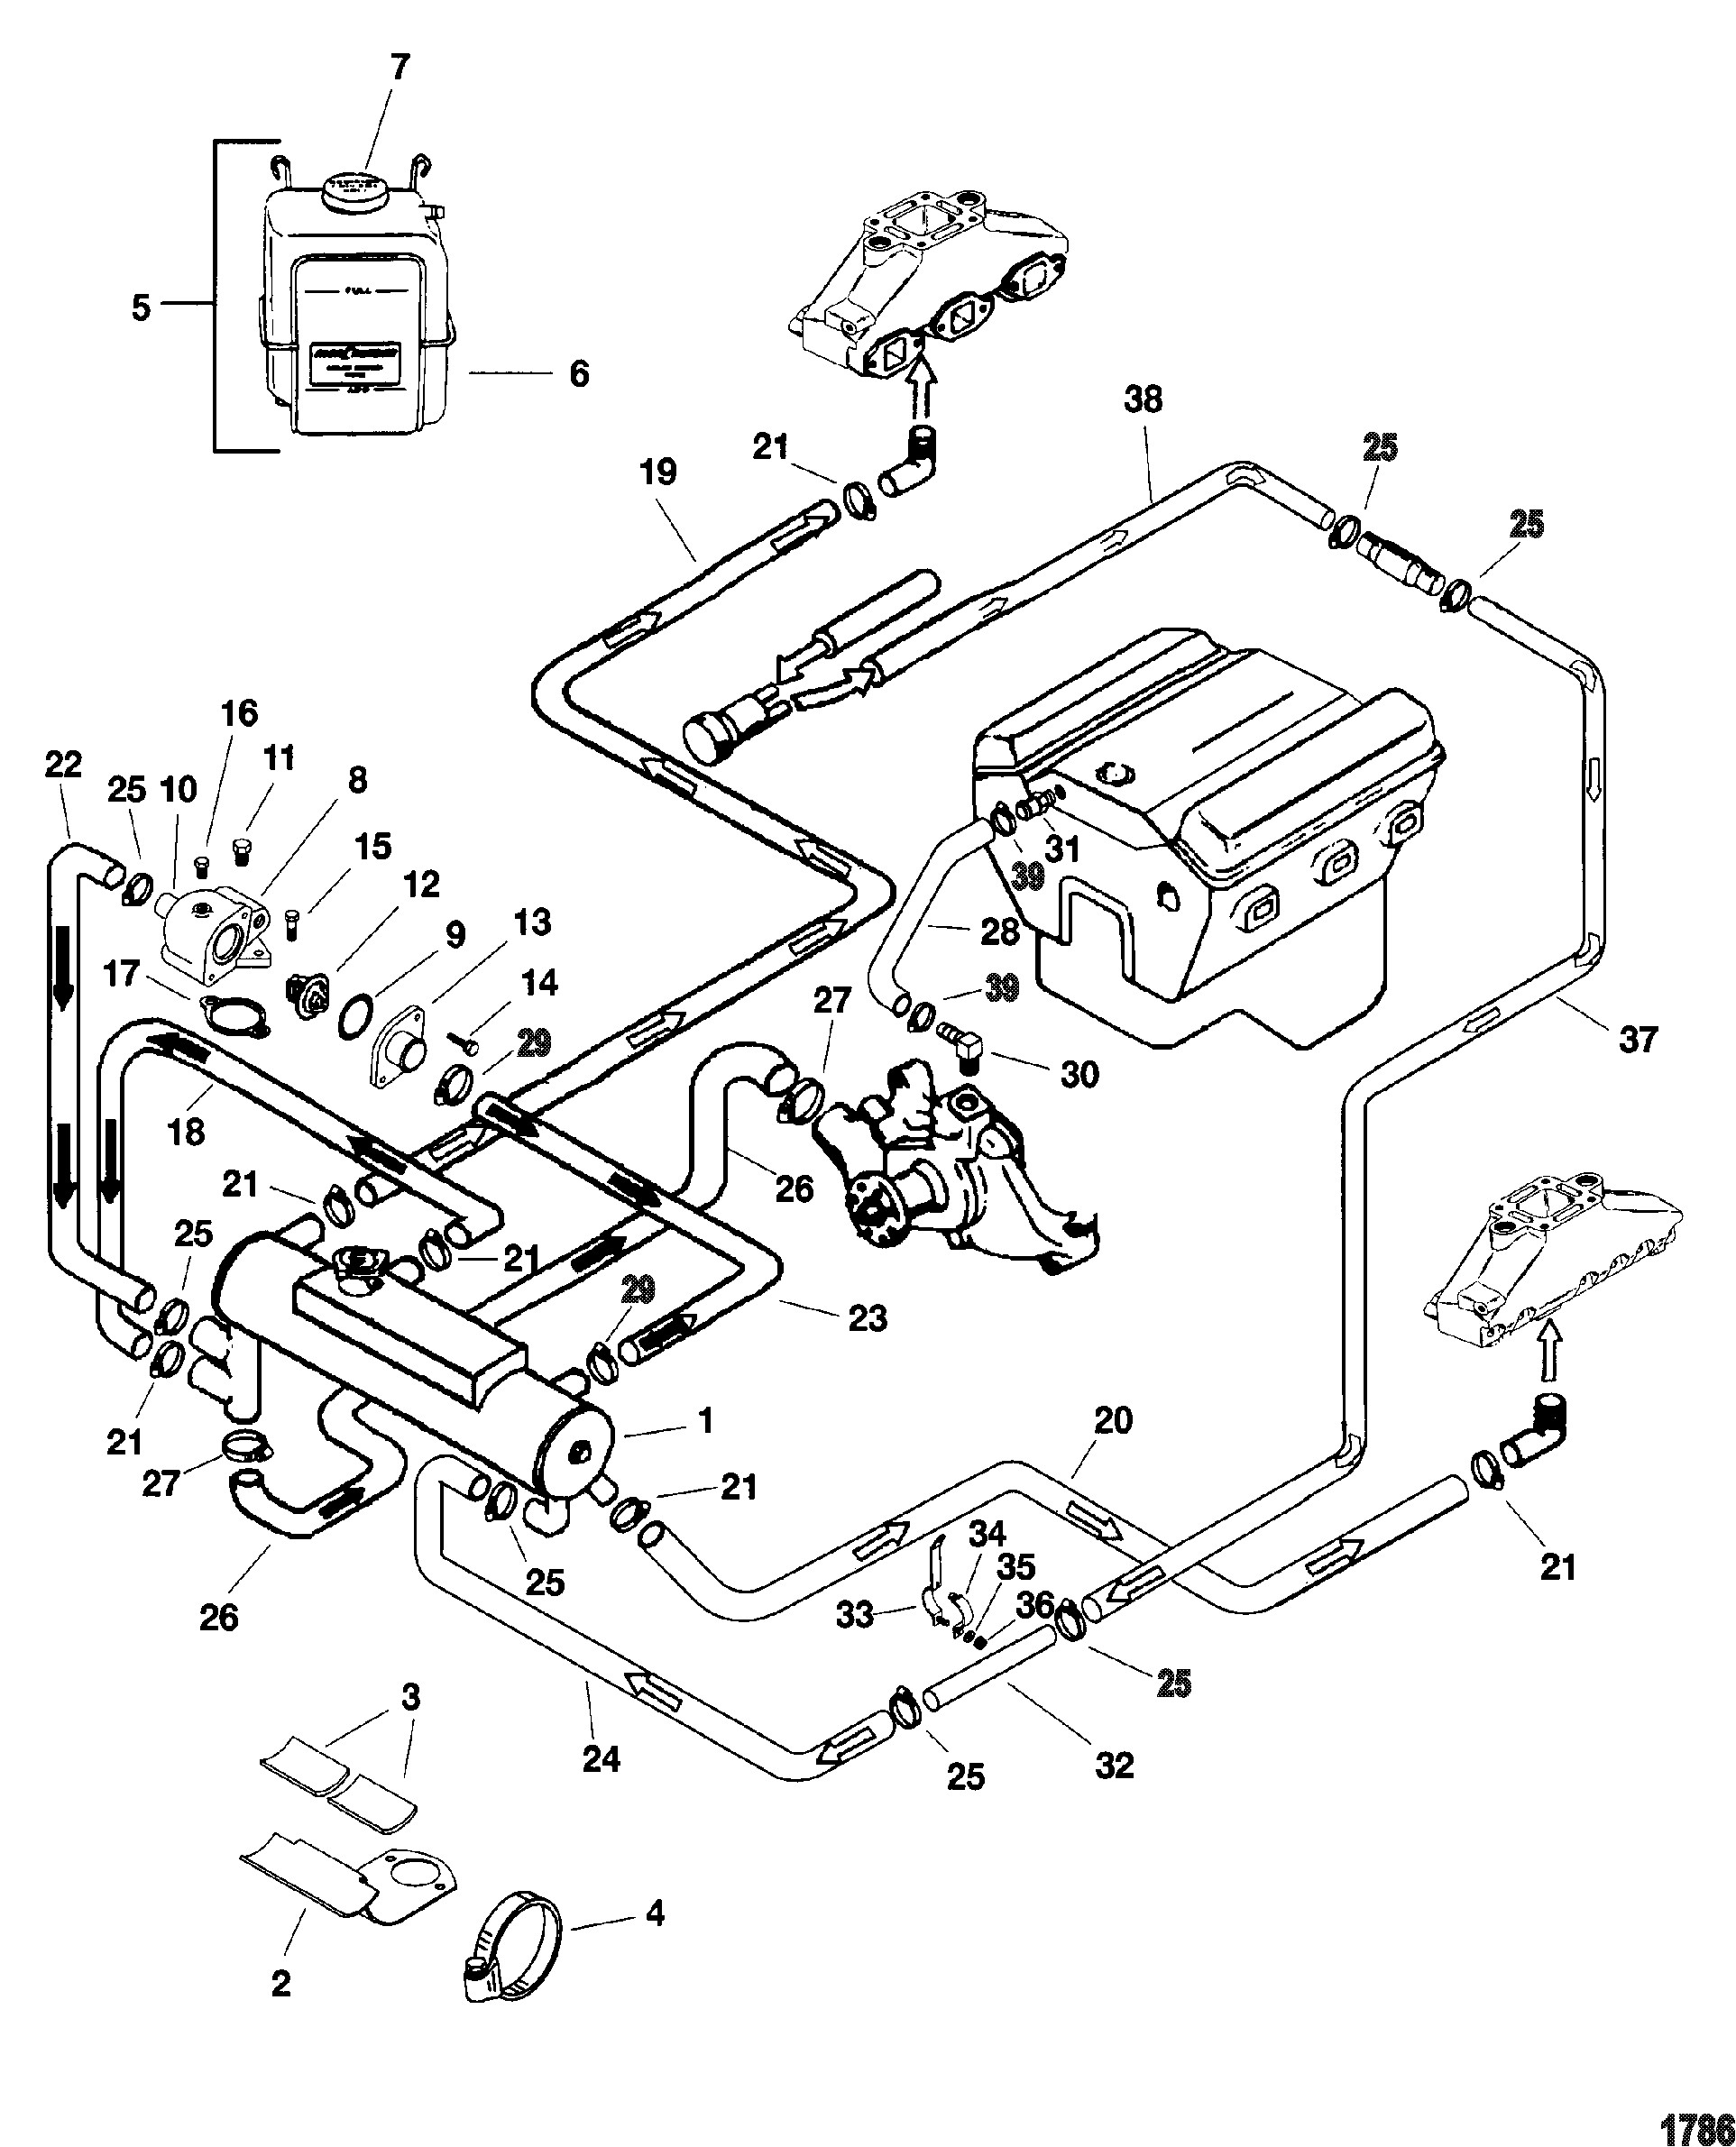 hight resolution of 2006 chrysler 3 8 engine diagram 7 ulrich temme de u20222004 chrysler pacifica parts diagram